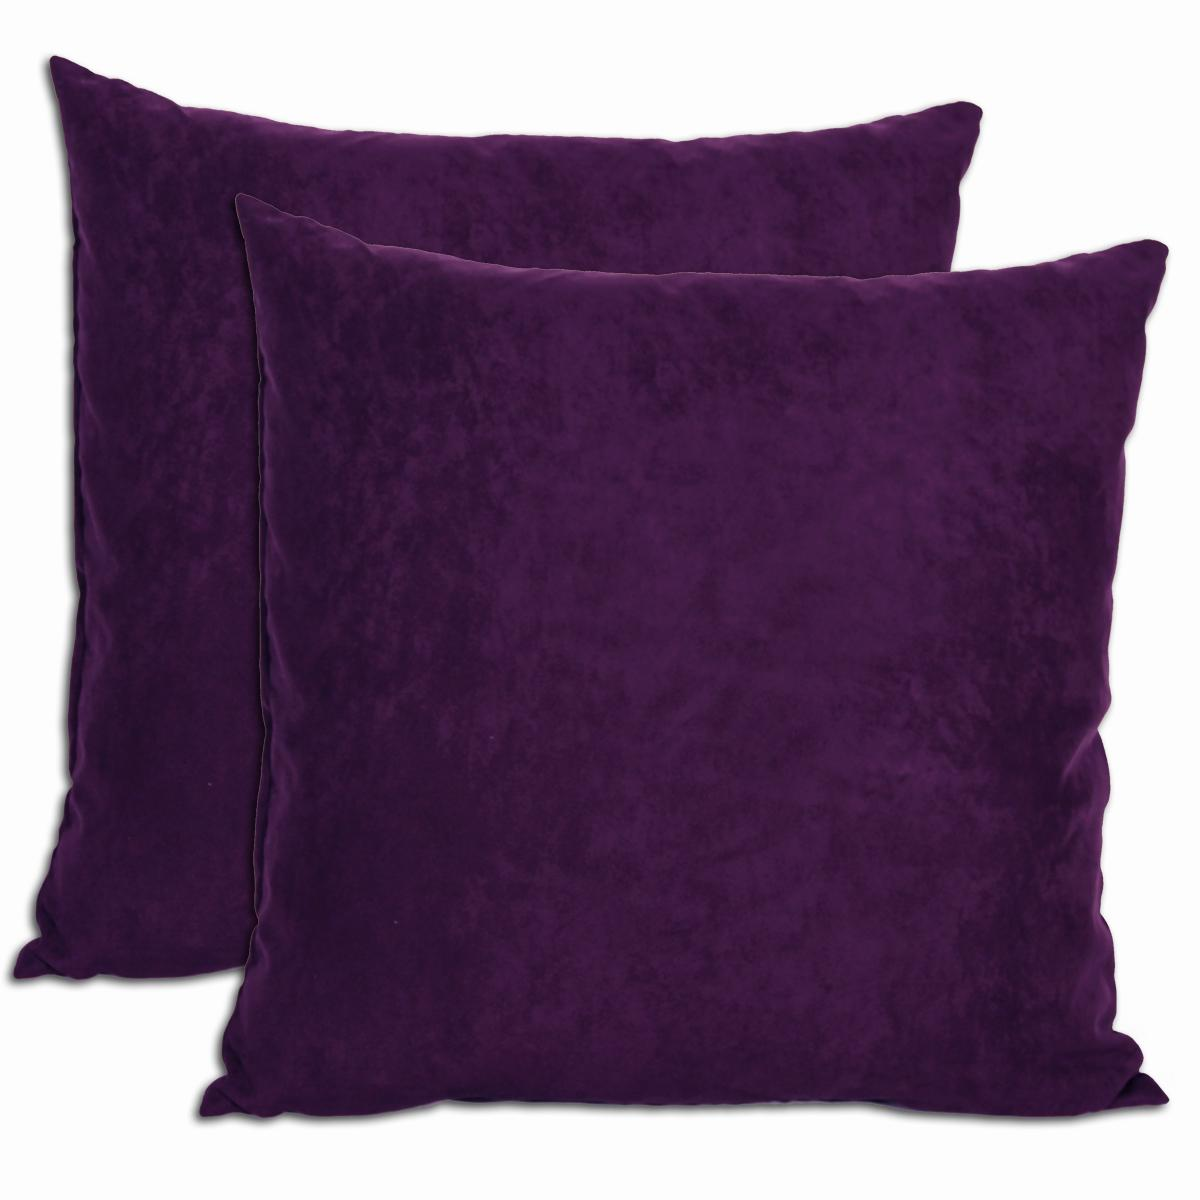 Decorative Pillow Set Purple Microsuede Feather And Down Filled Throw Pillows Set Of 2